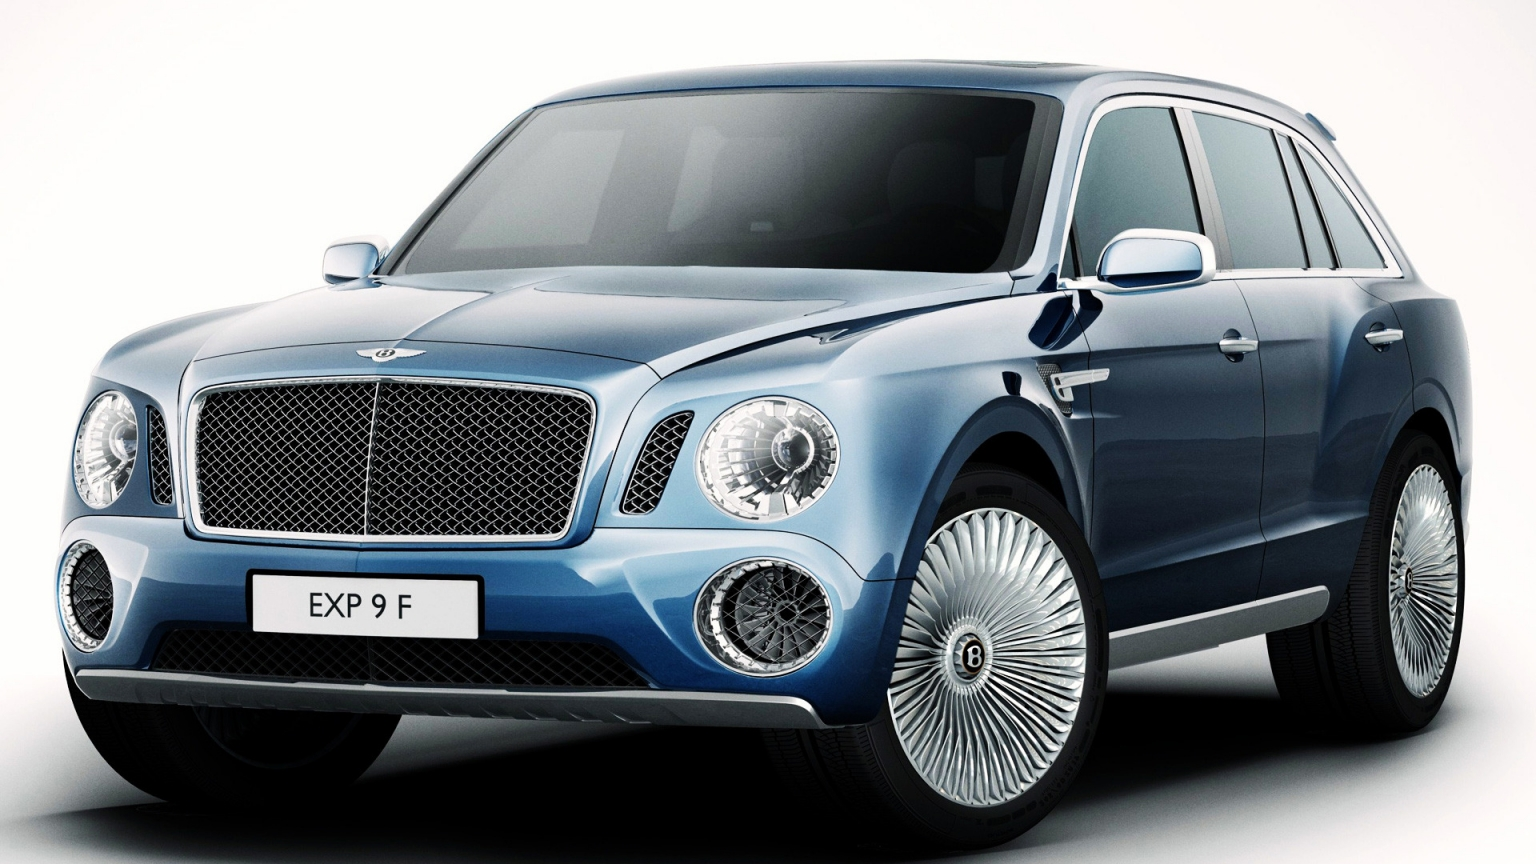 Bentley SUV 2012 Geneva for 1536 x 864 HDTV resolution